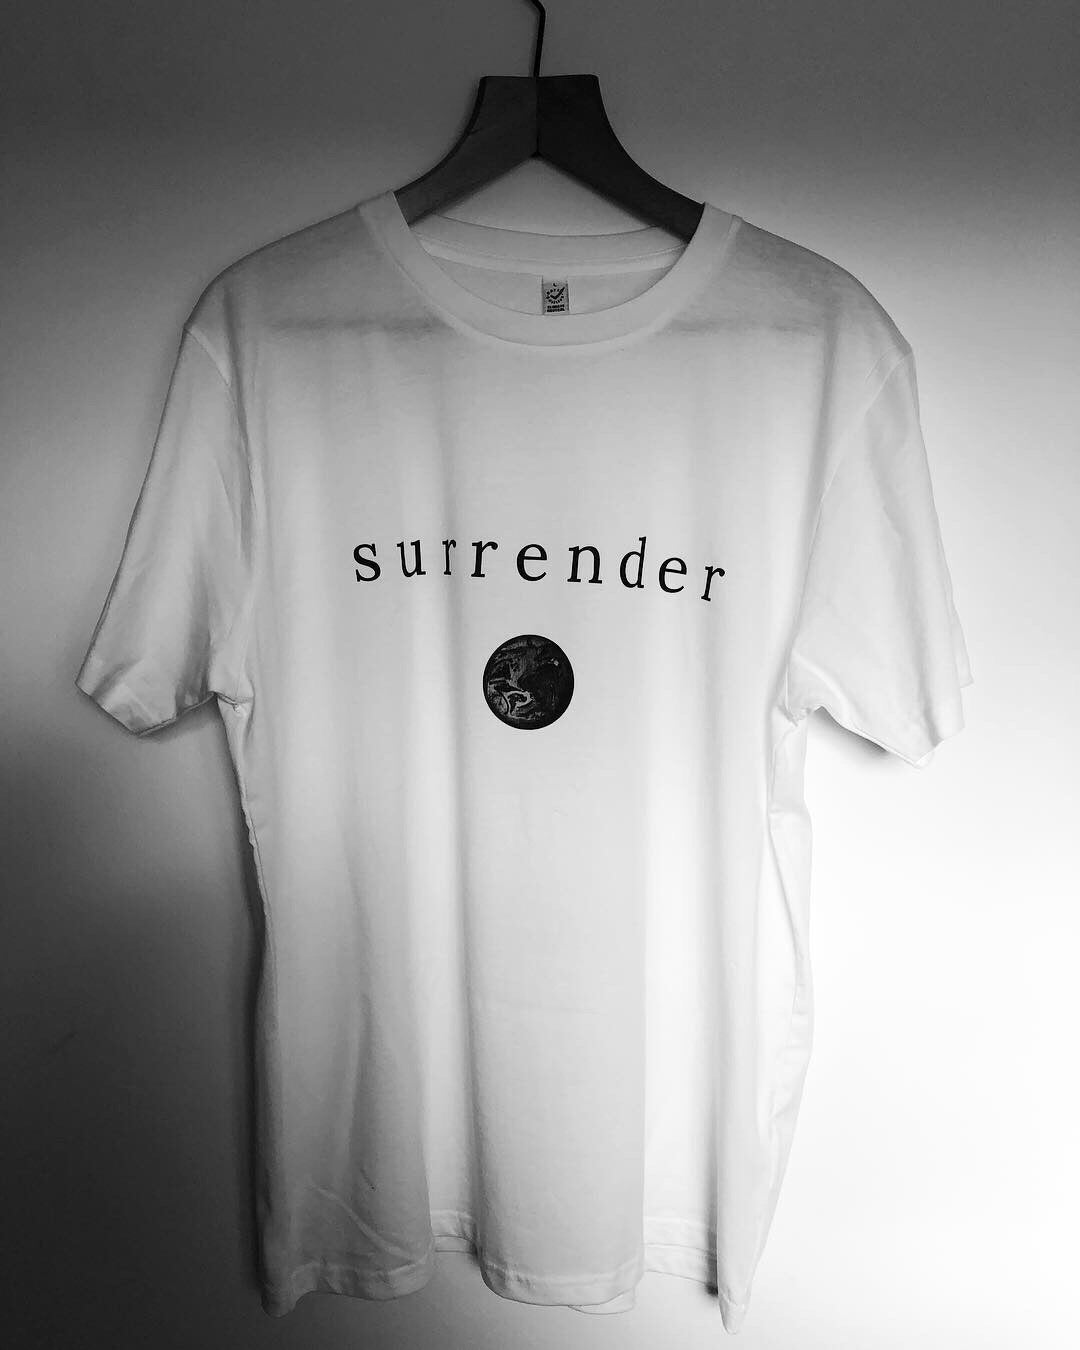 Surrender Organic White Tee Shirt